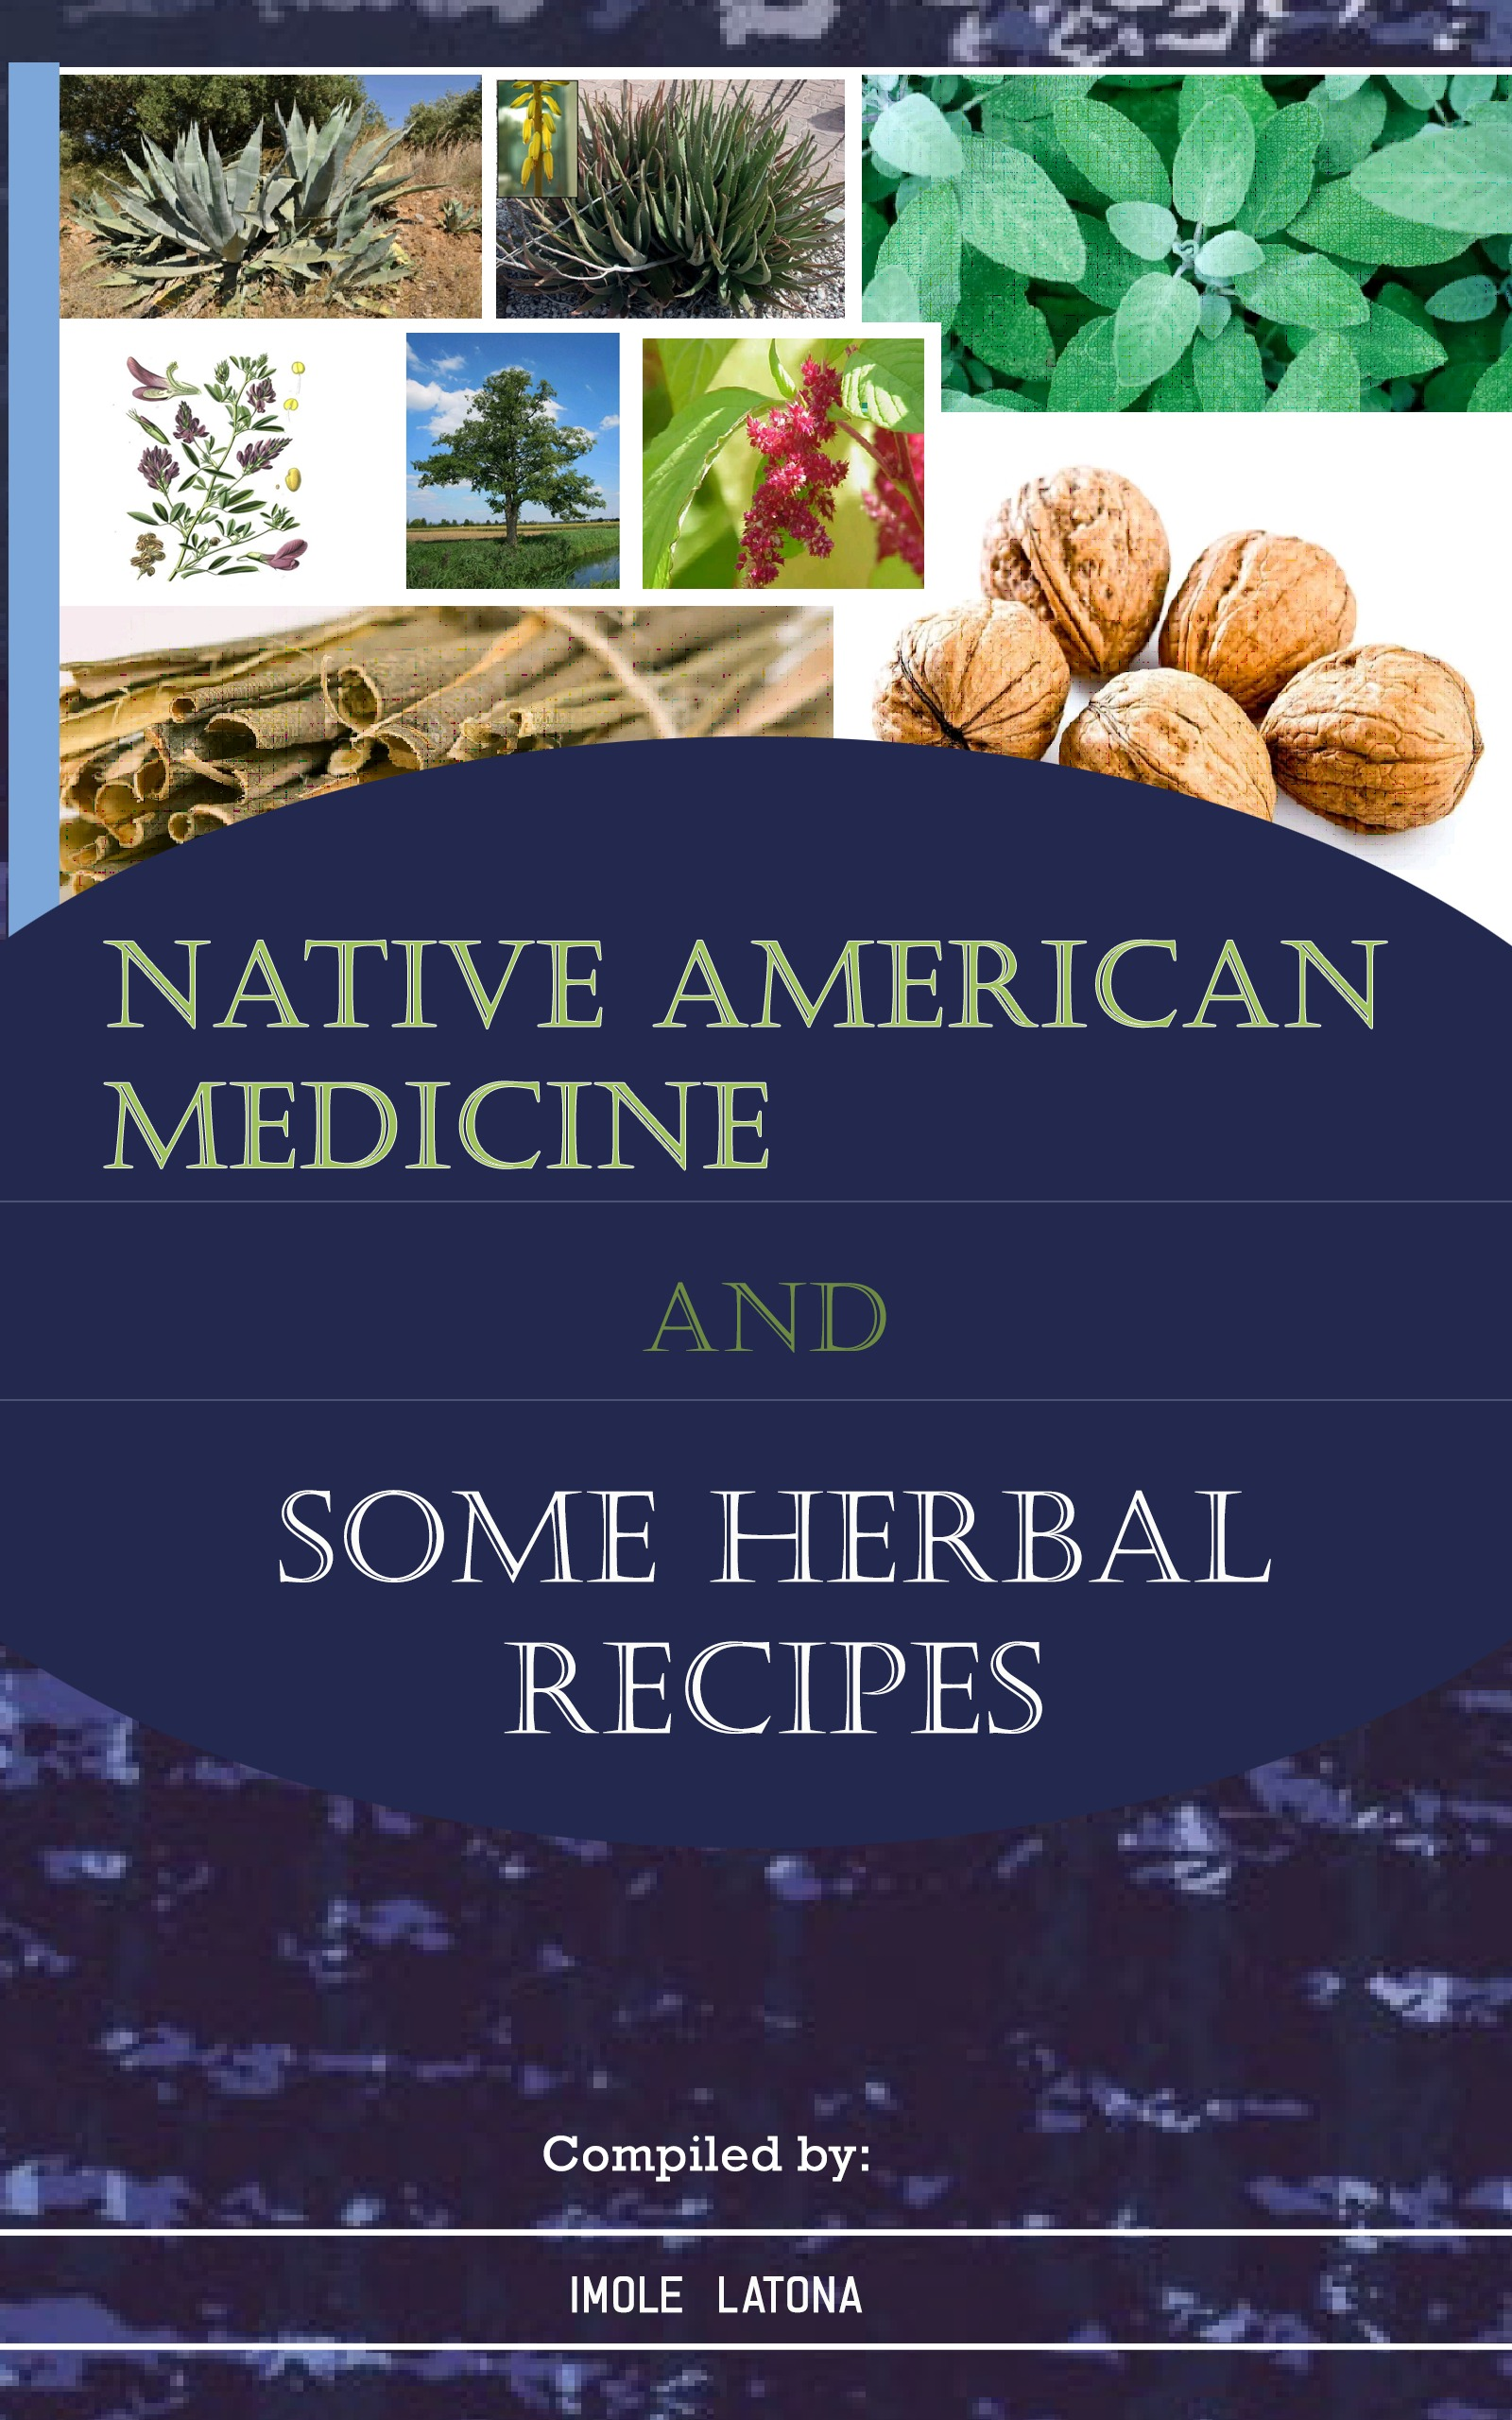 NATIVE AMERICAN MEDICINE AND SOME HERBAL RECIPES